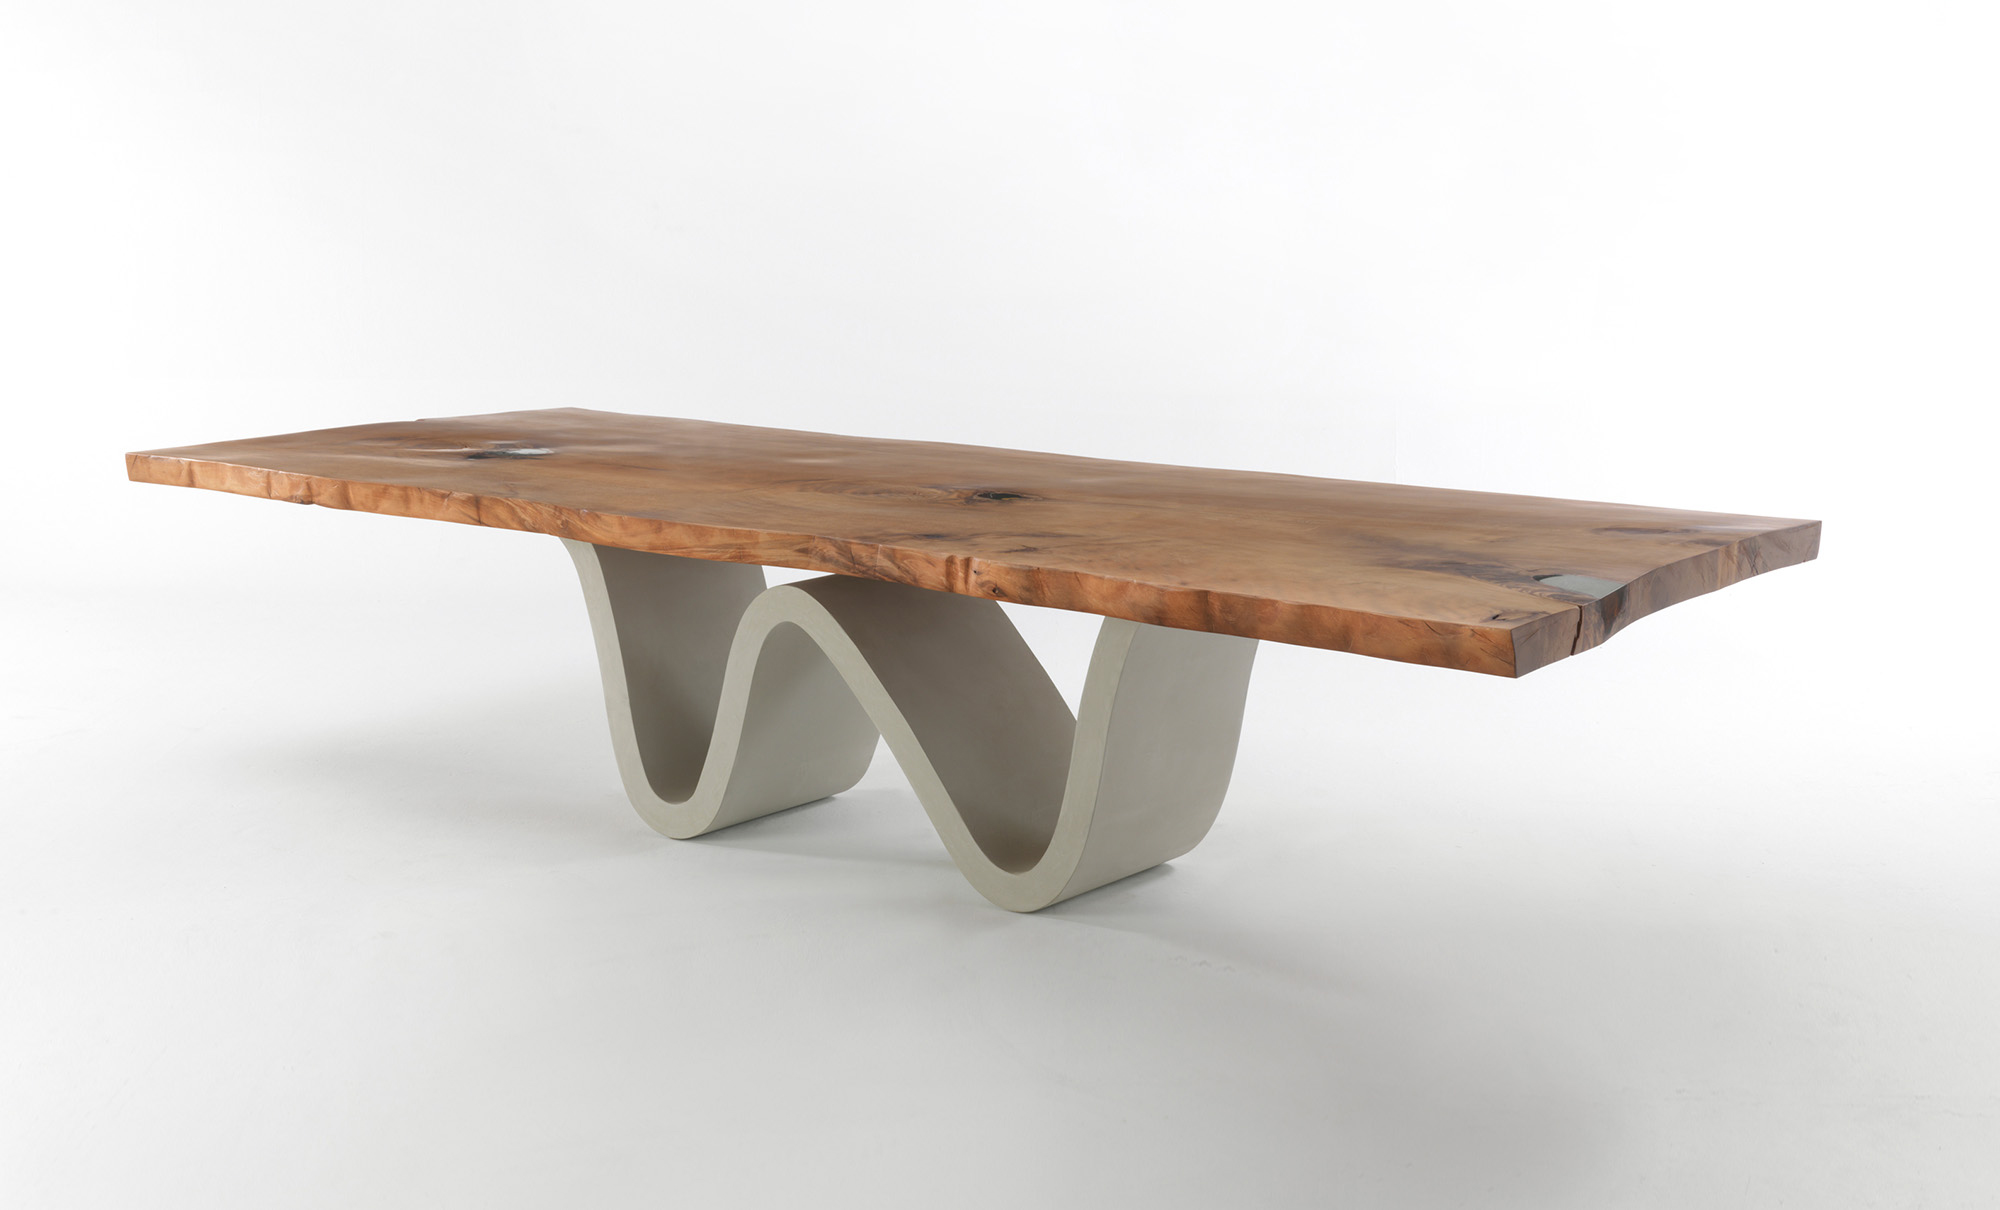 Auckland bree e onda dining tables fanuli furniture for Coffee tables auckland new zealand